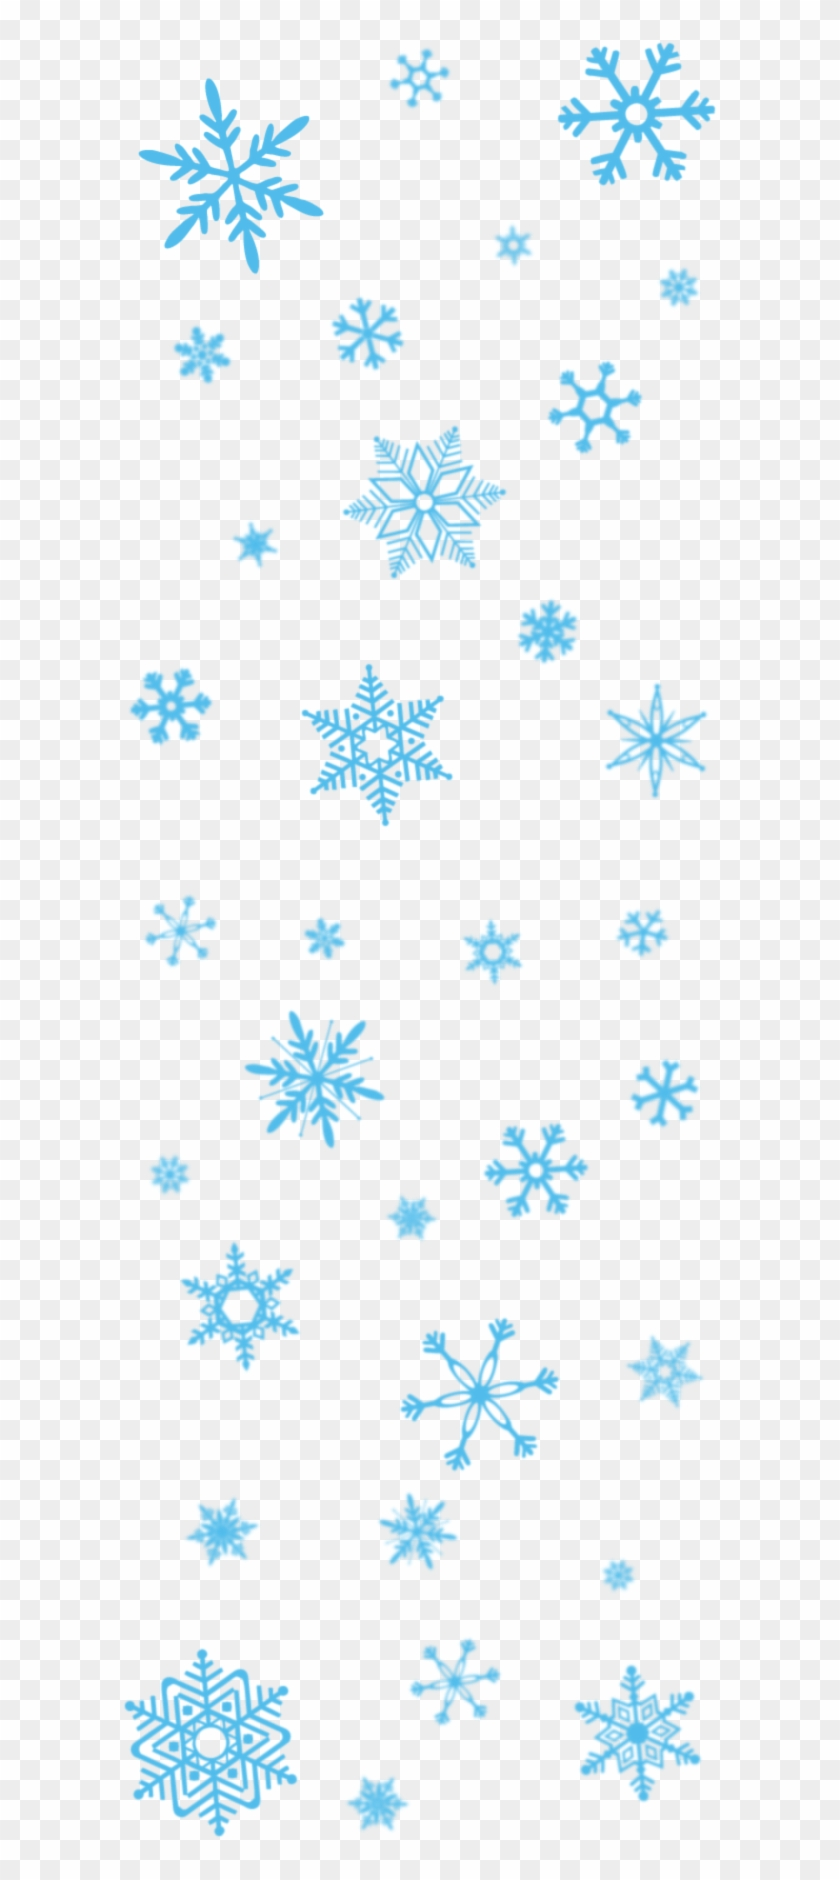 Snowflakes Transparent Png Pictures.